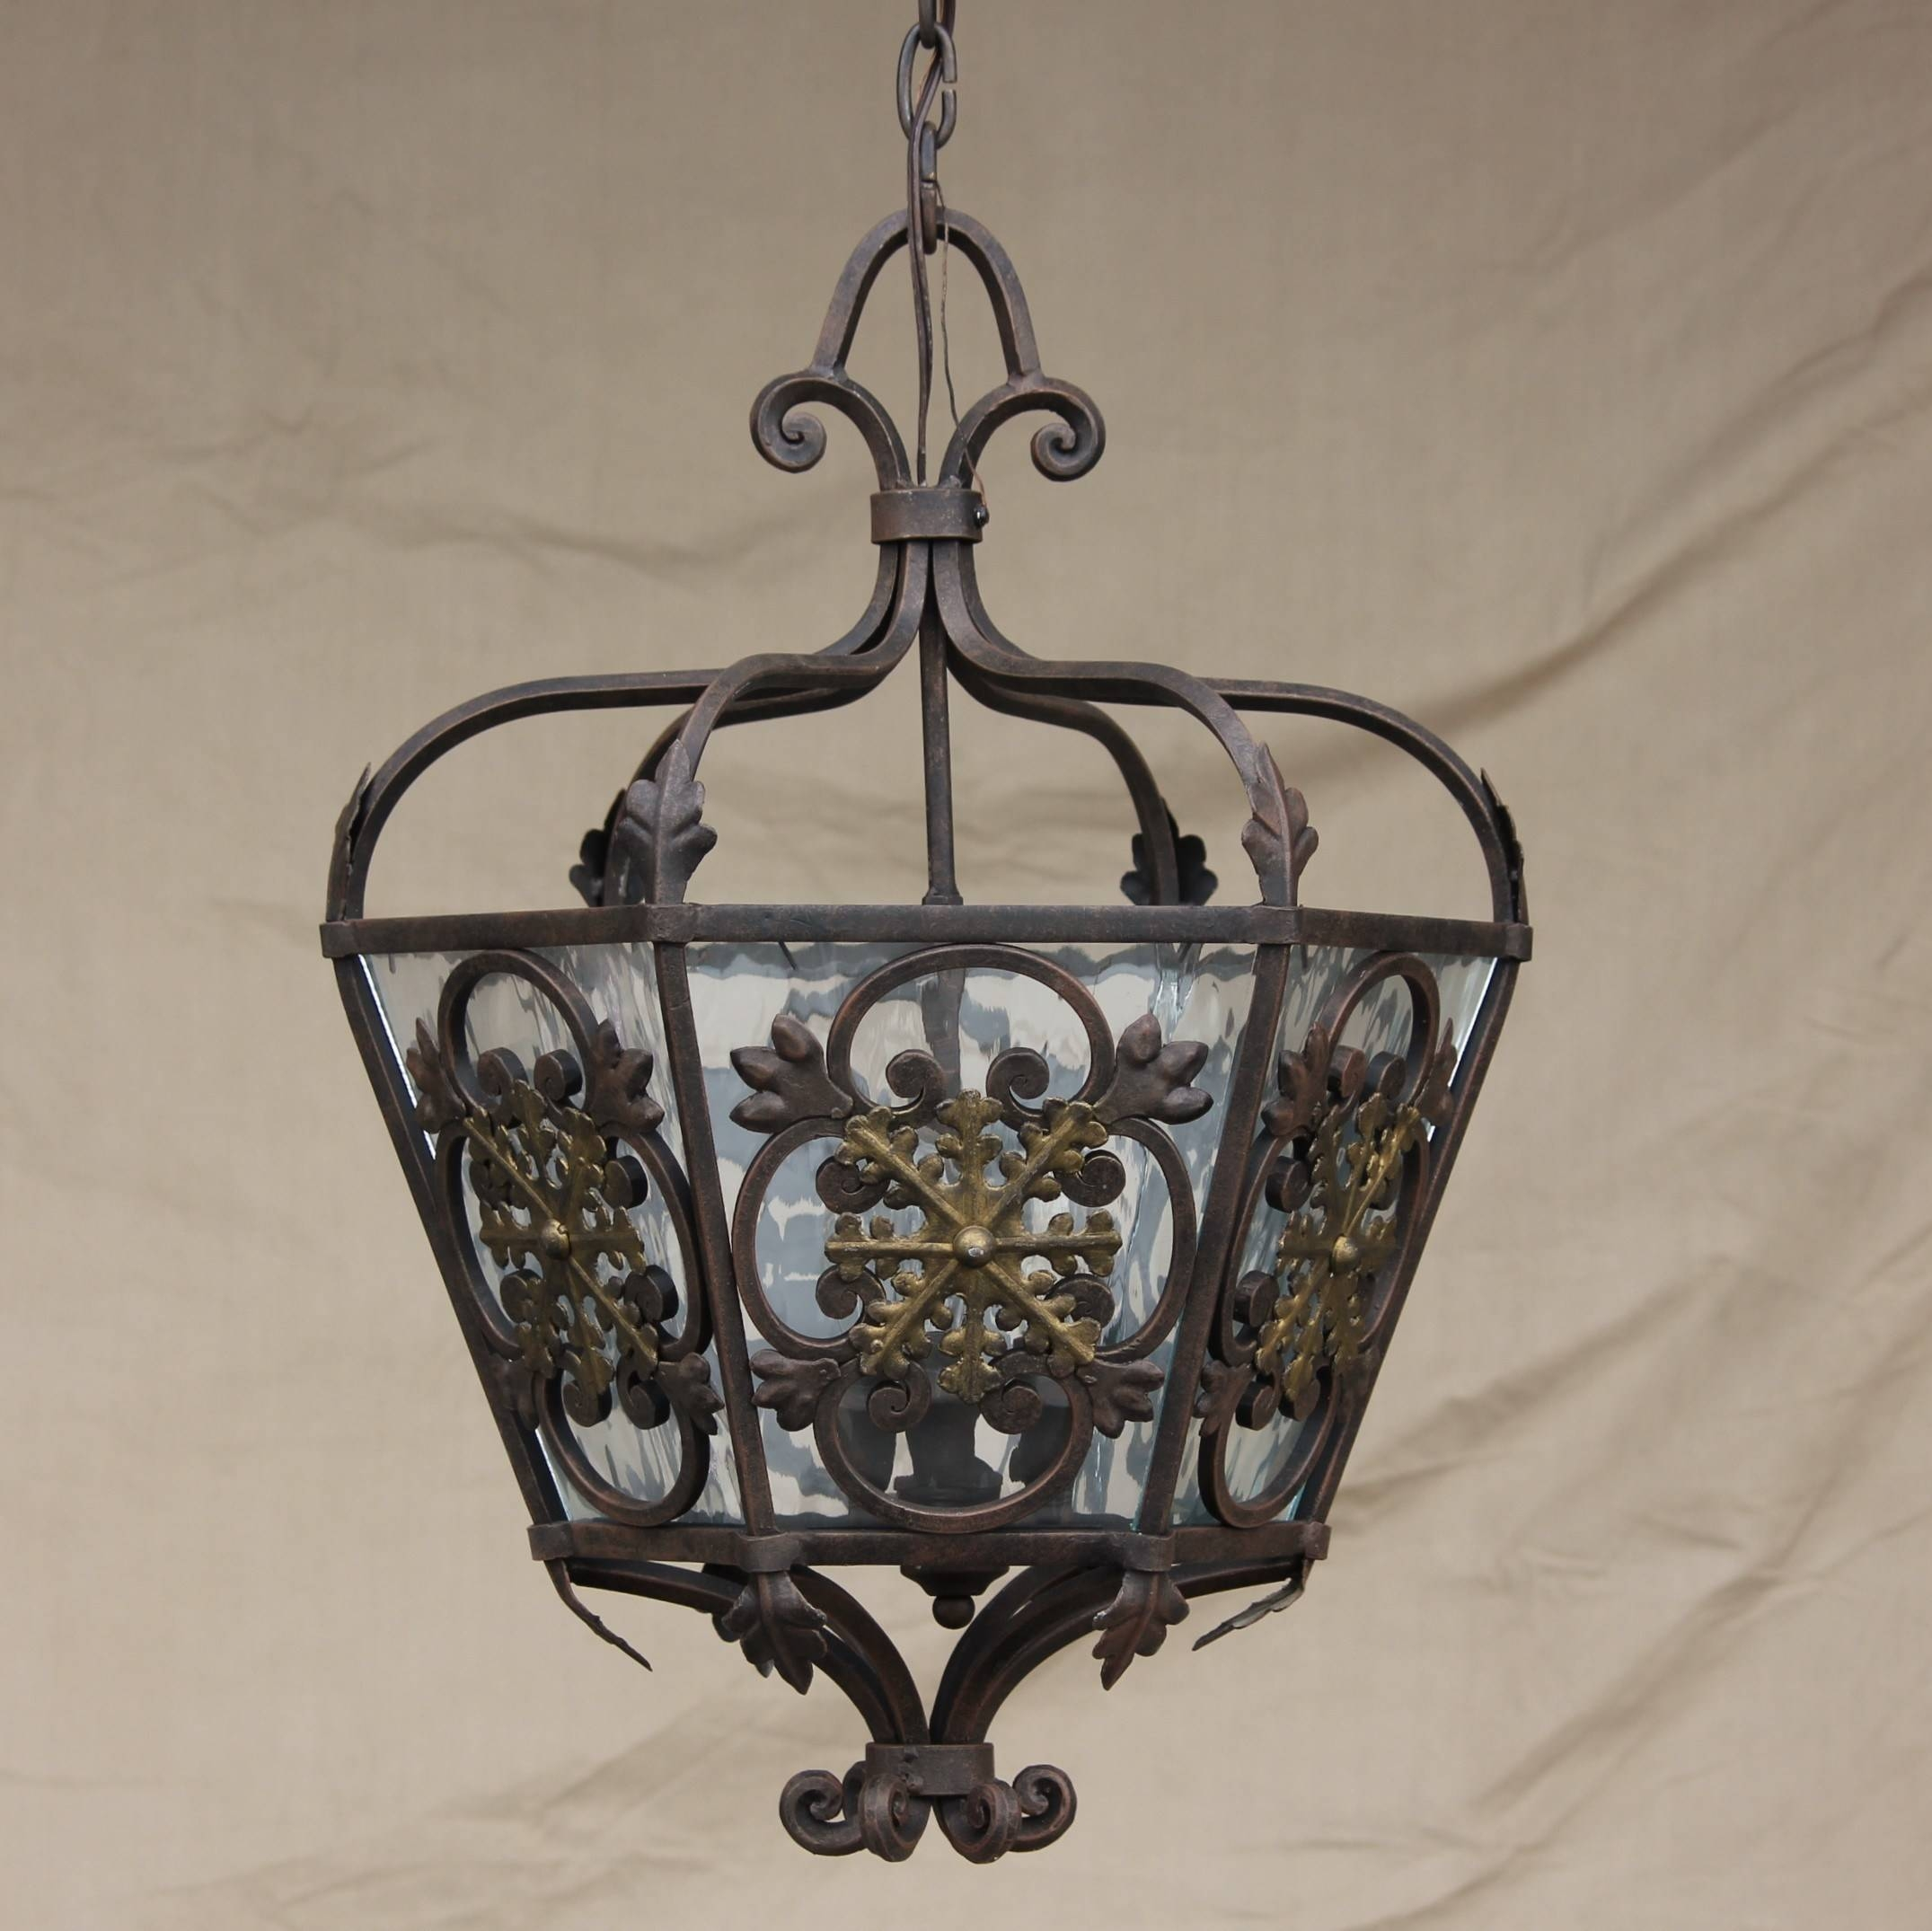 Wrought Iron Pendant Light – Aneilve pertaining to Wrought Iron Lights Pendants (Image 15 of 15)